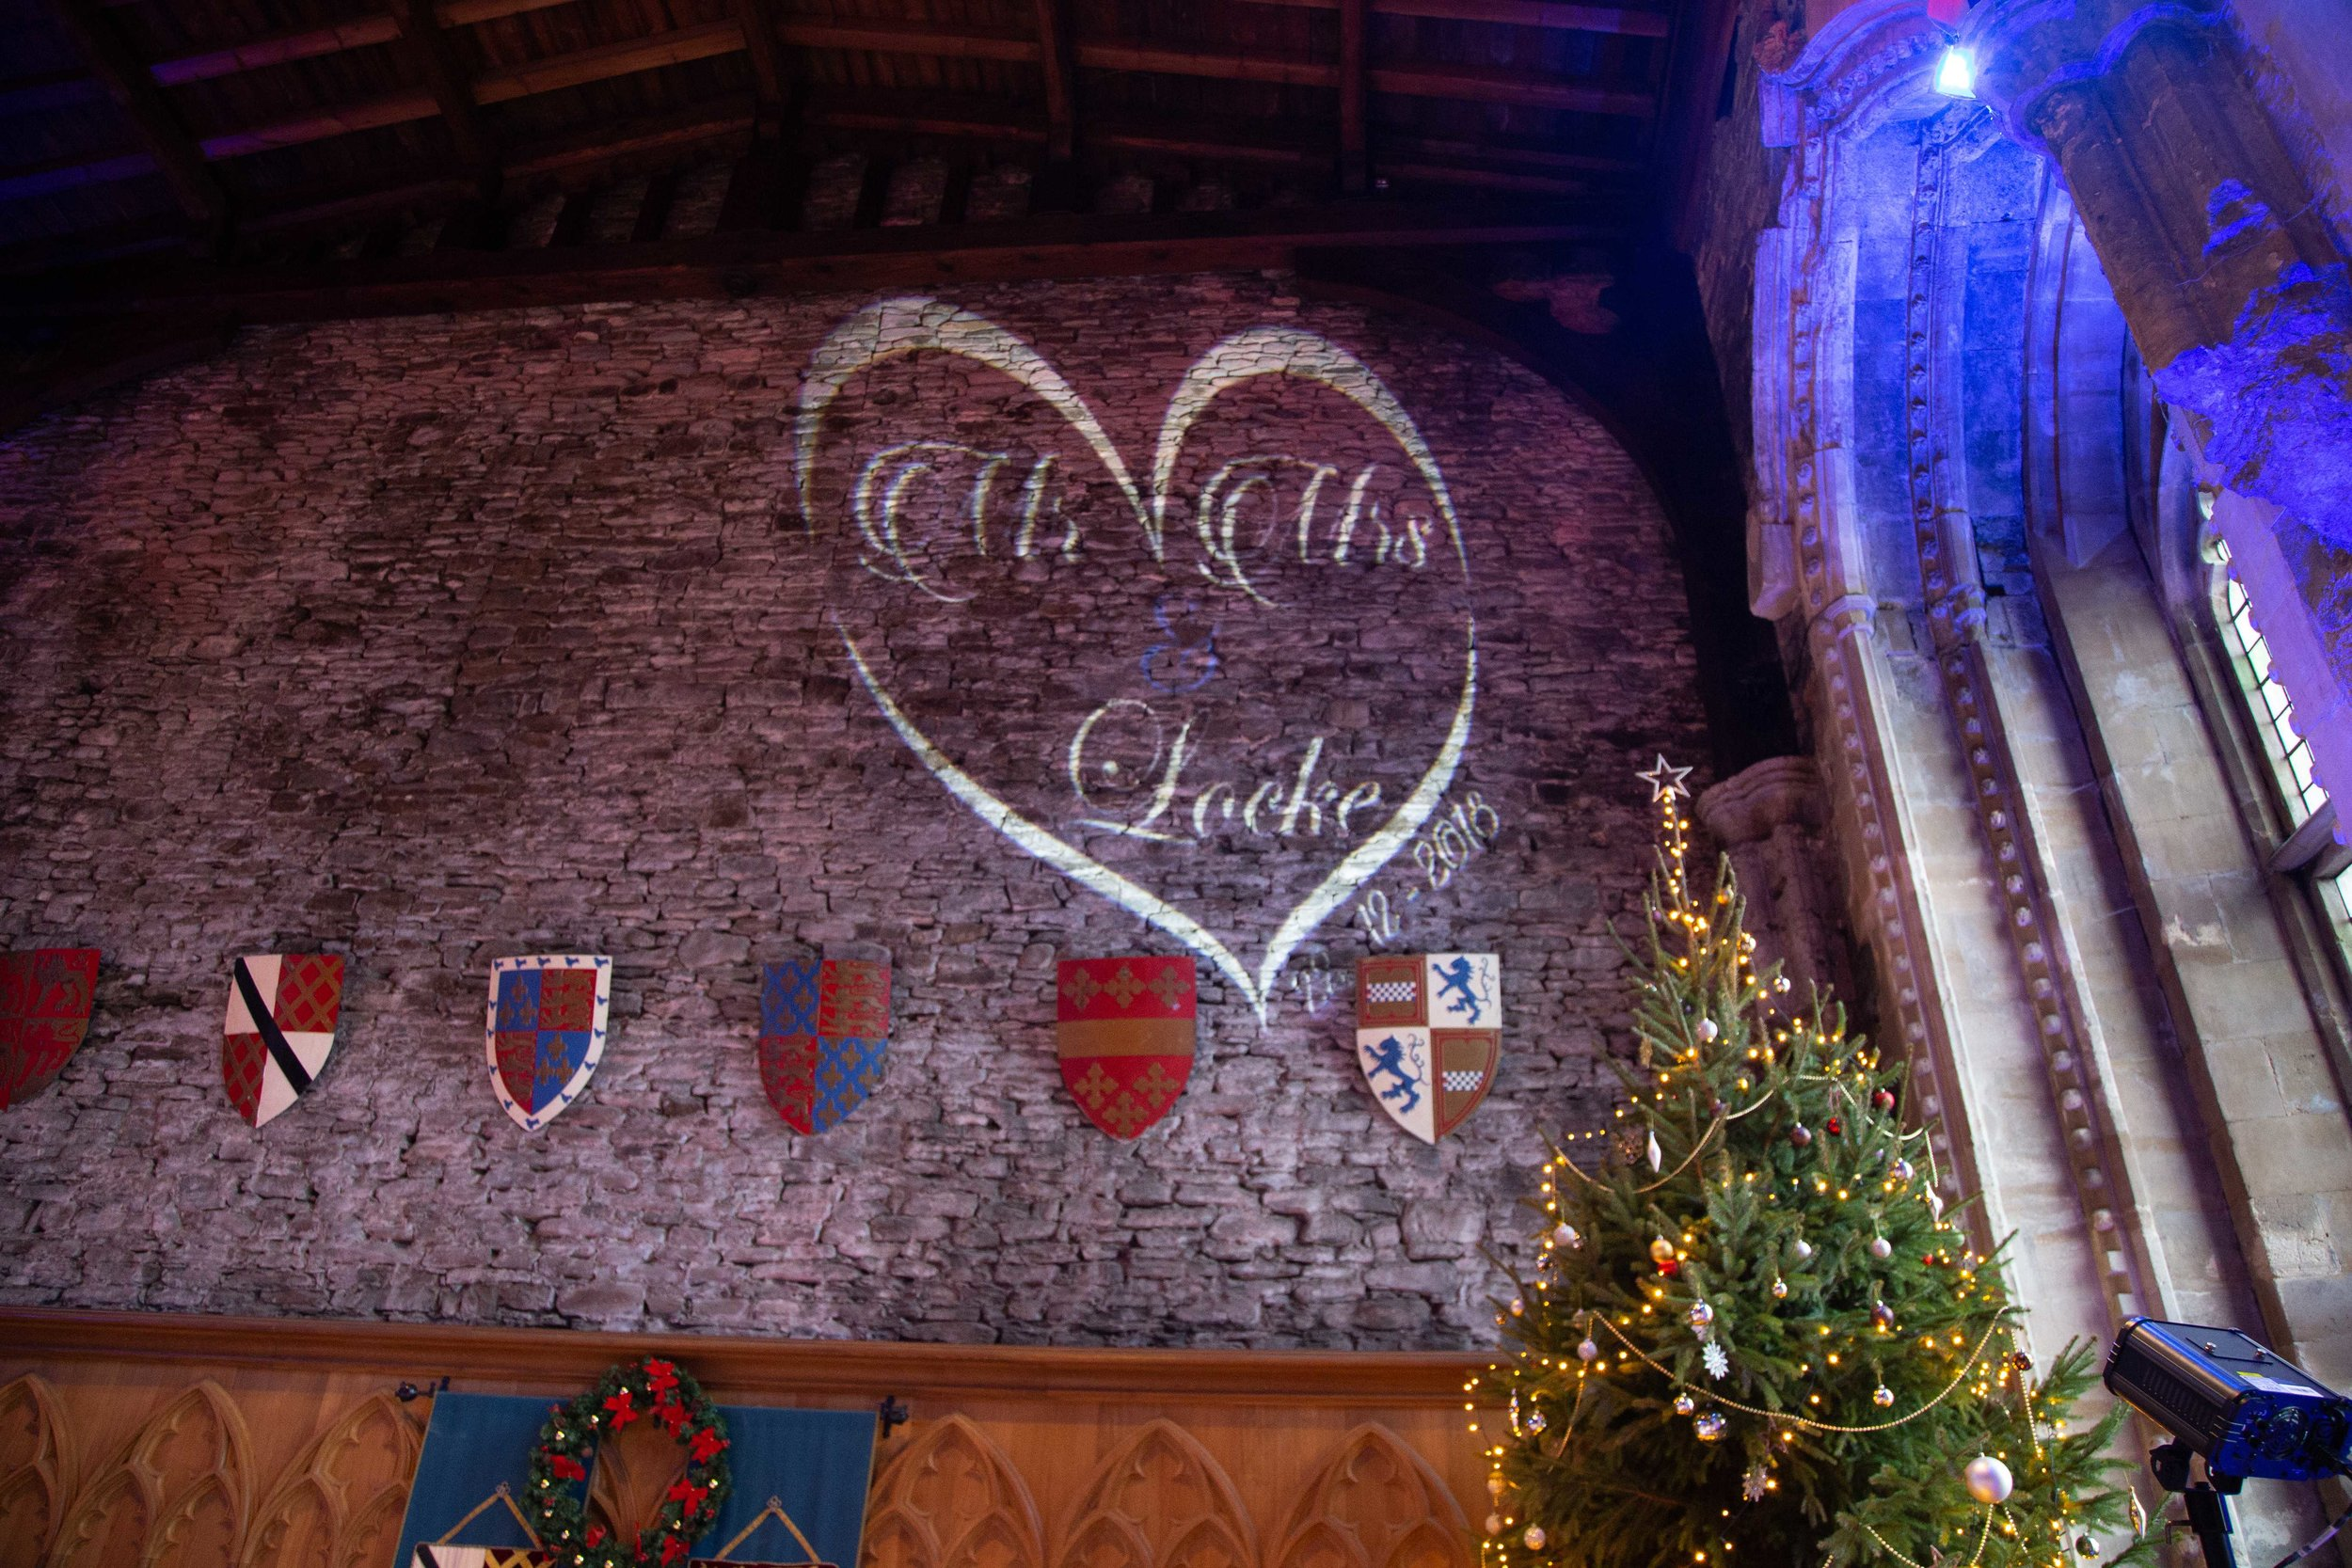 The Great Hall at Caerphilly Castle decorated for a christmas wedding